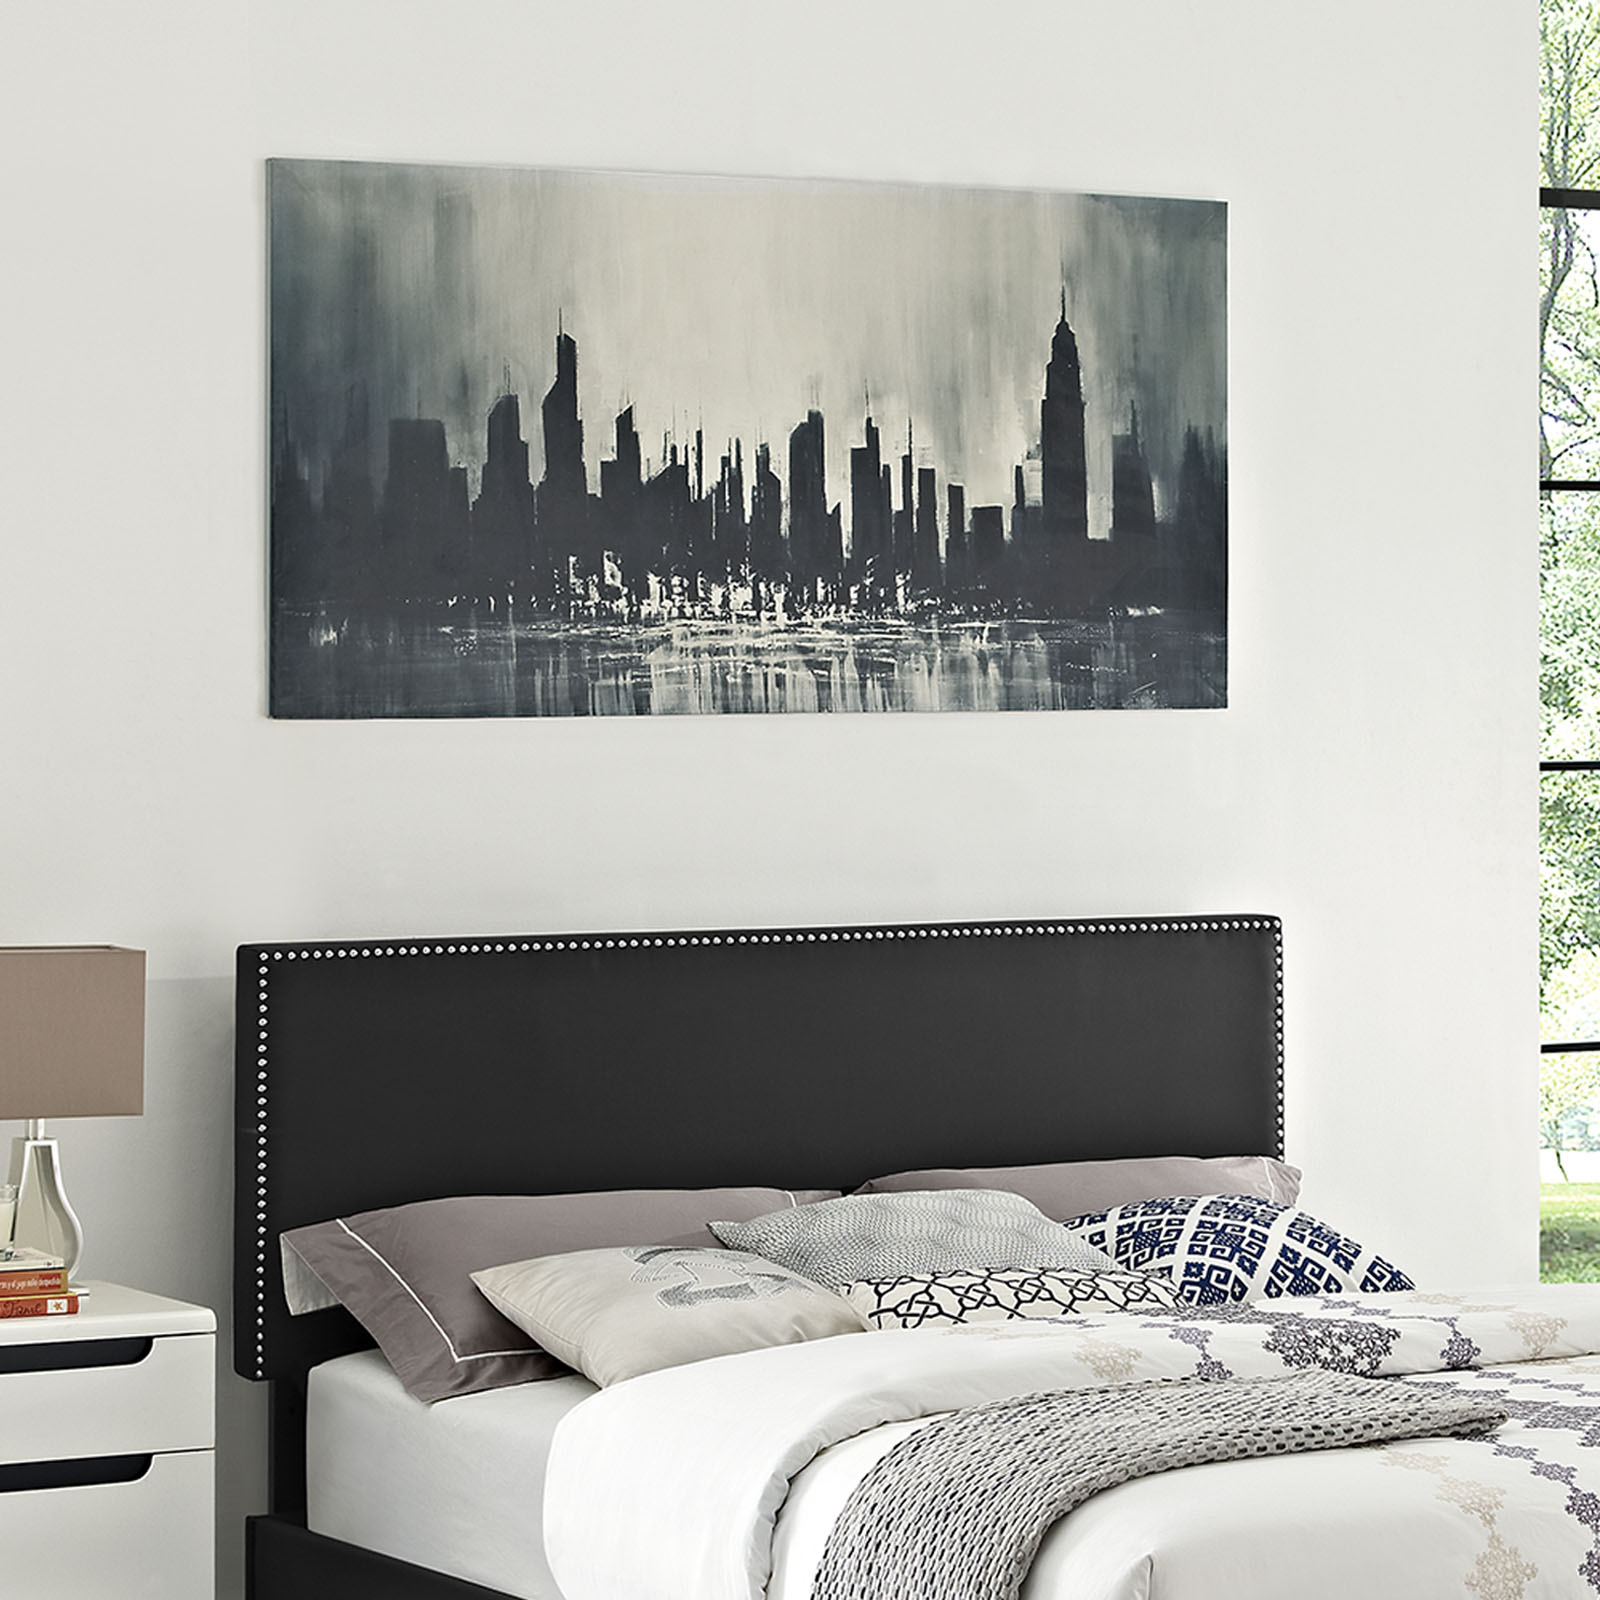 Modway Phoebe Nail Button Accent Headboard, Multiple Sizes and Colors